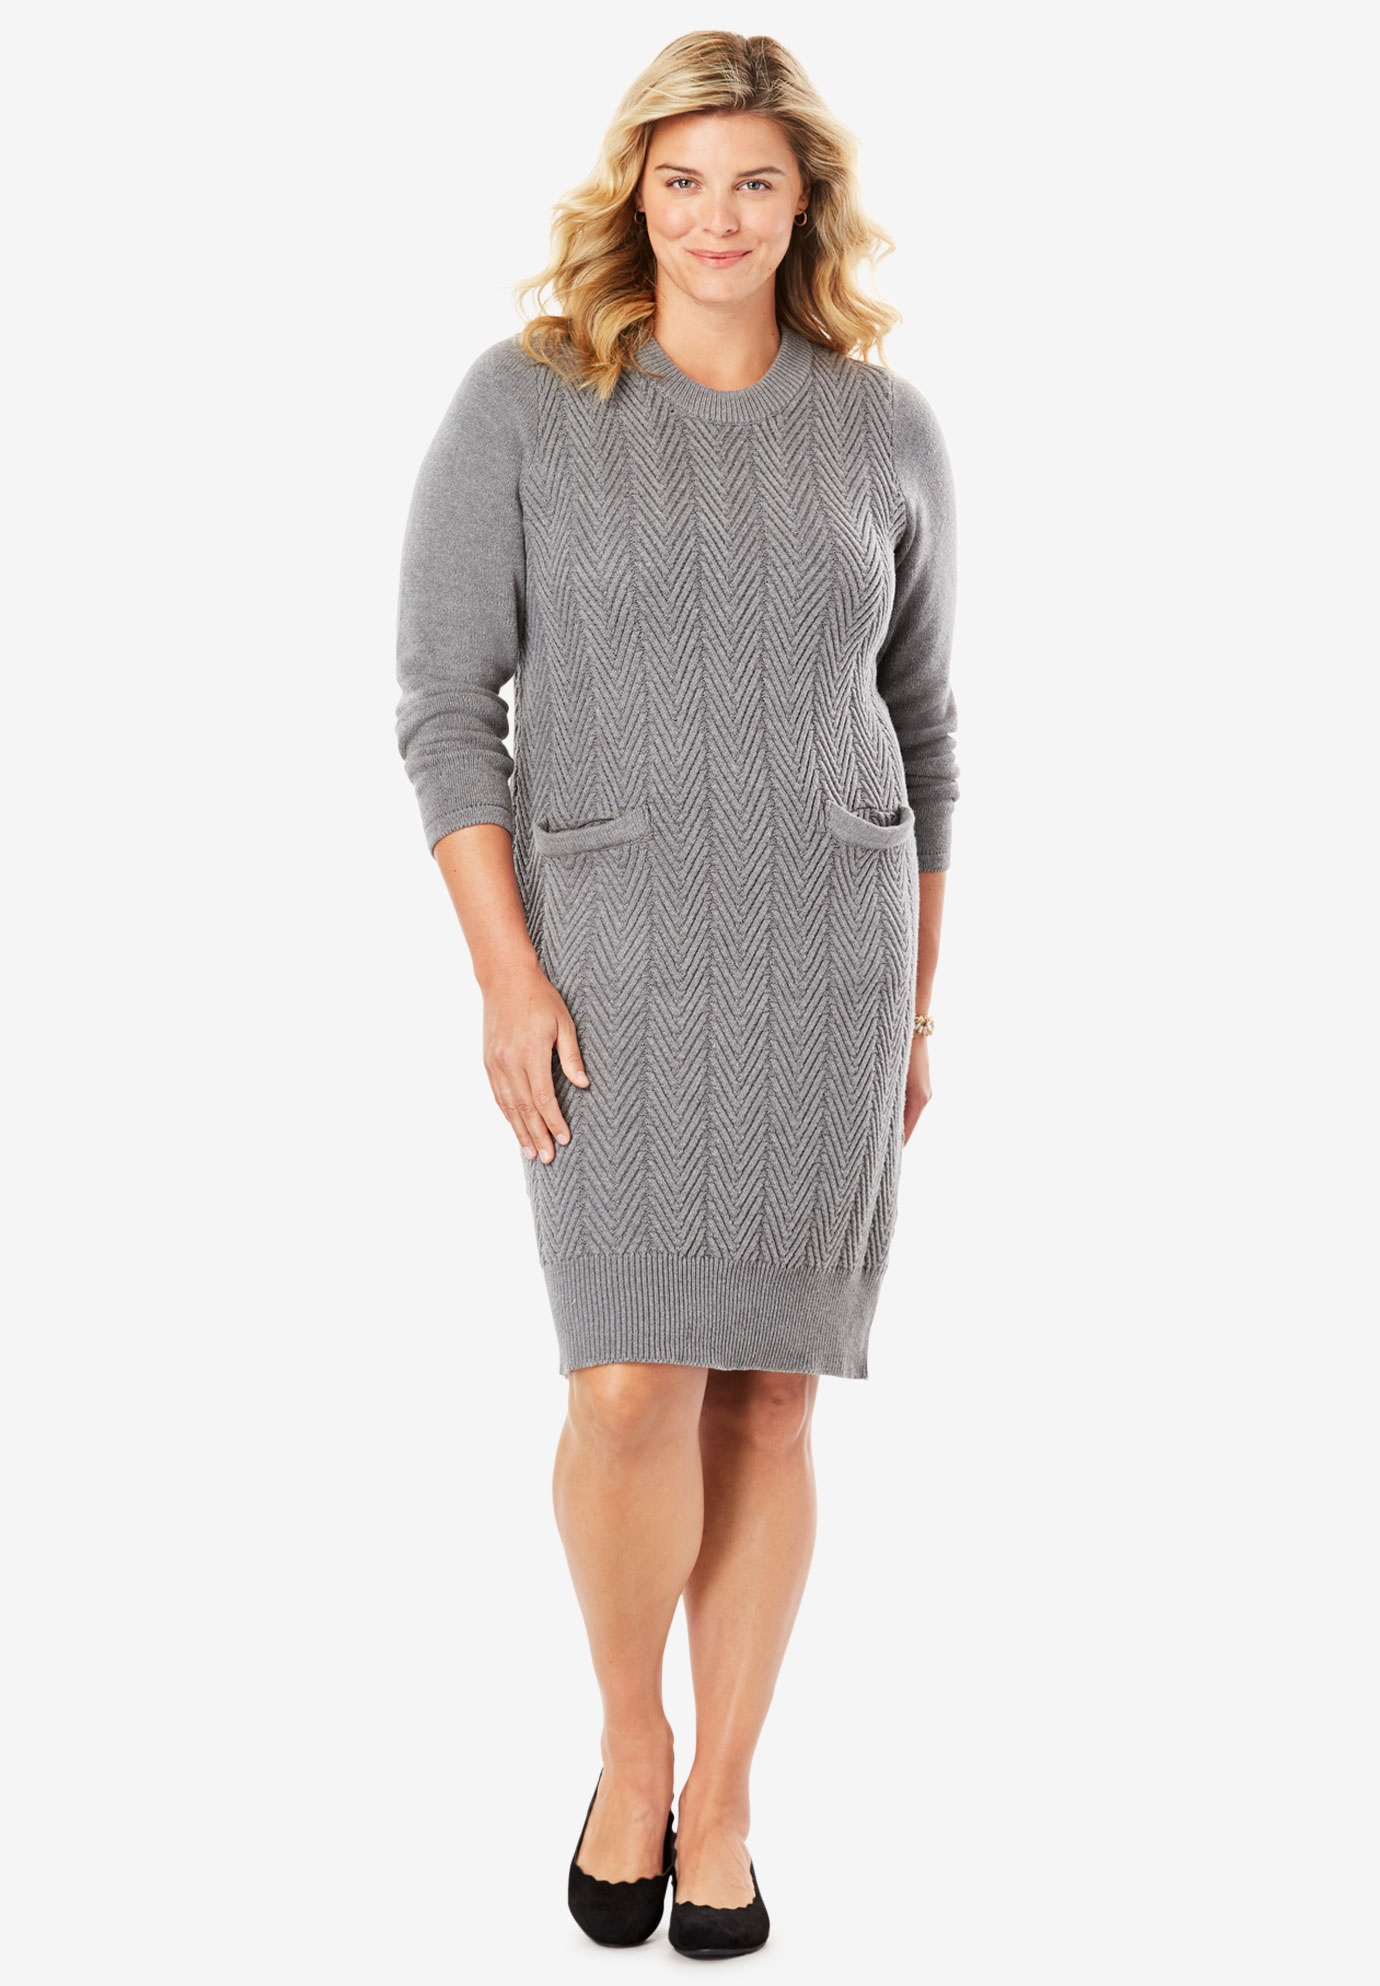 Chevron Stitch Sweater Dress | Plus Size Casual Dresses | Full Beauty